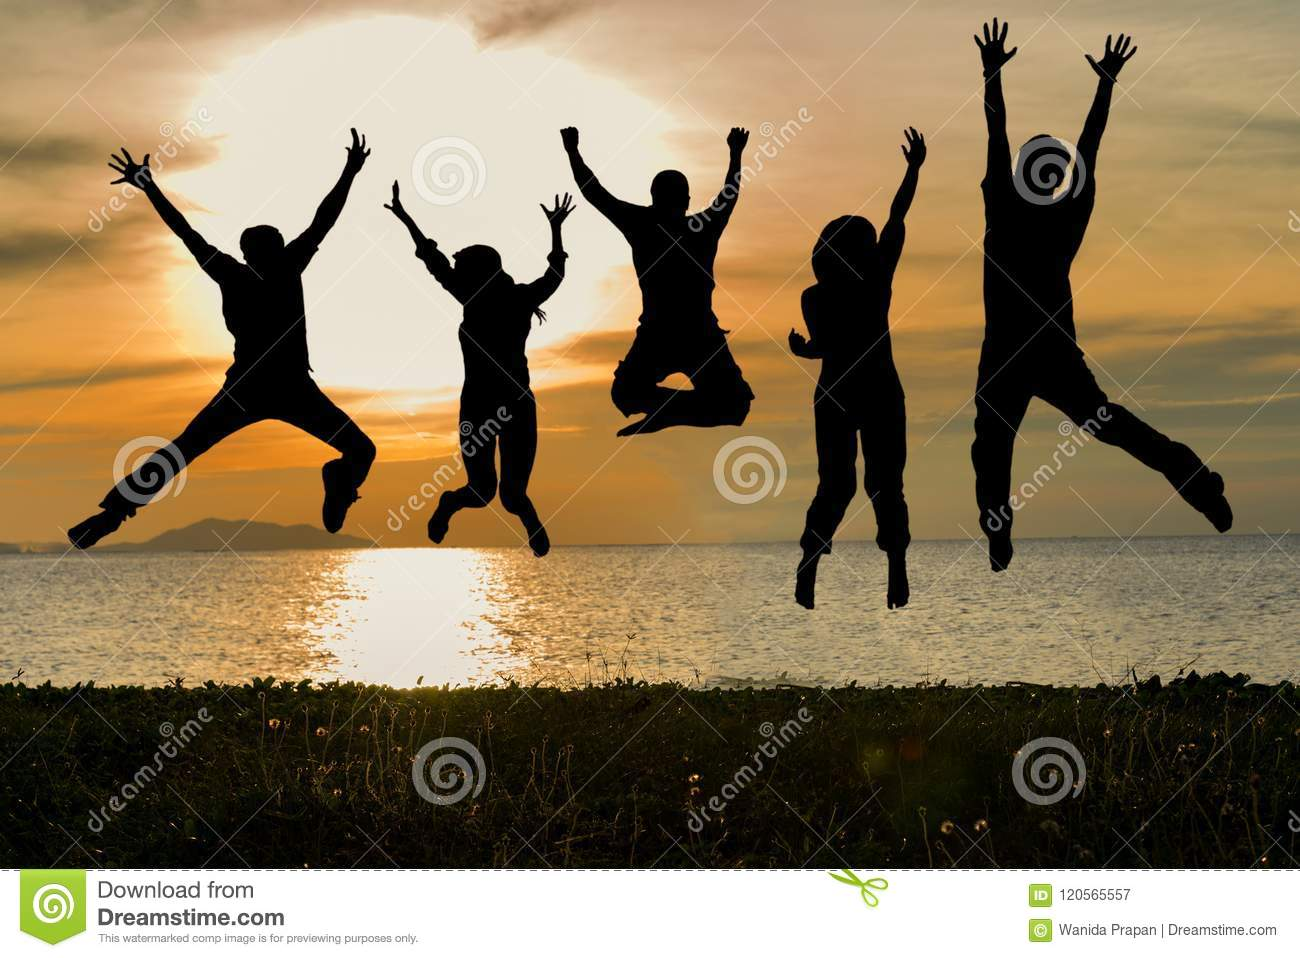 Silhouette of friends and teamwork jumping on beach during sunset time for success business.